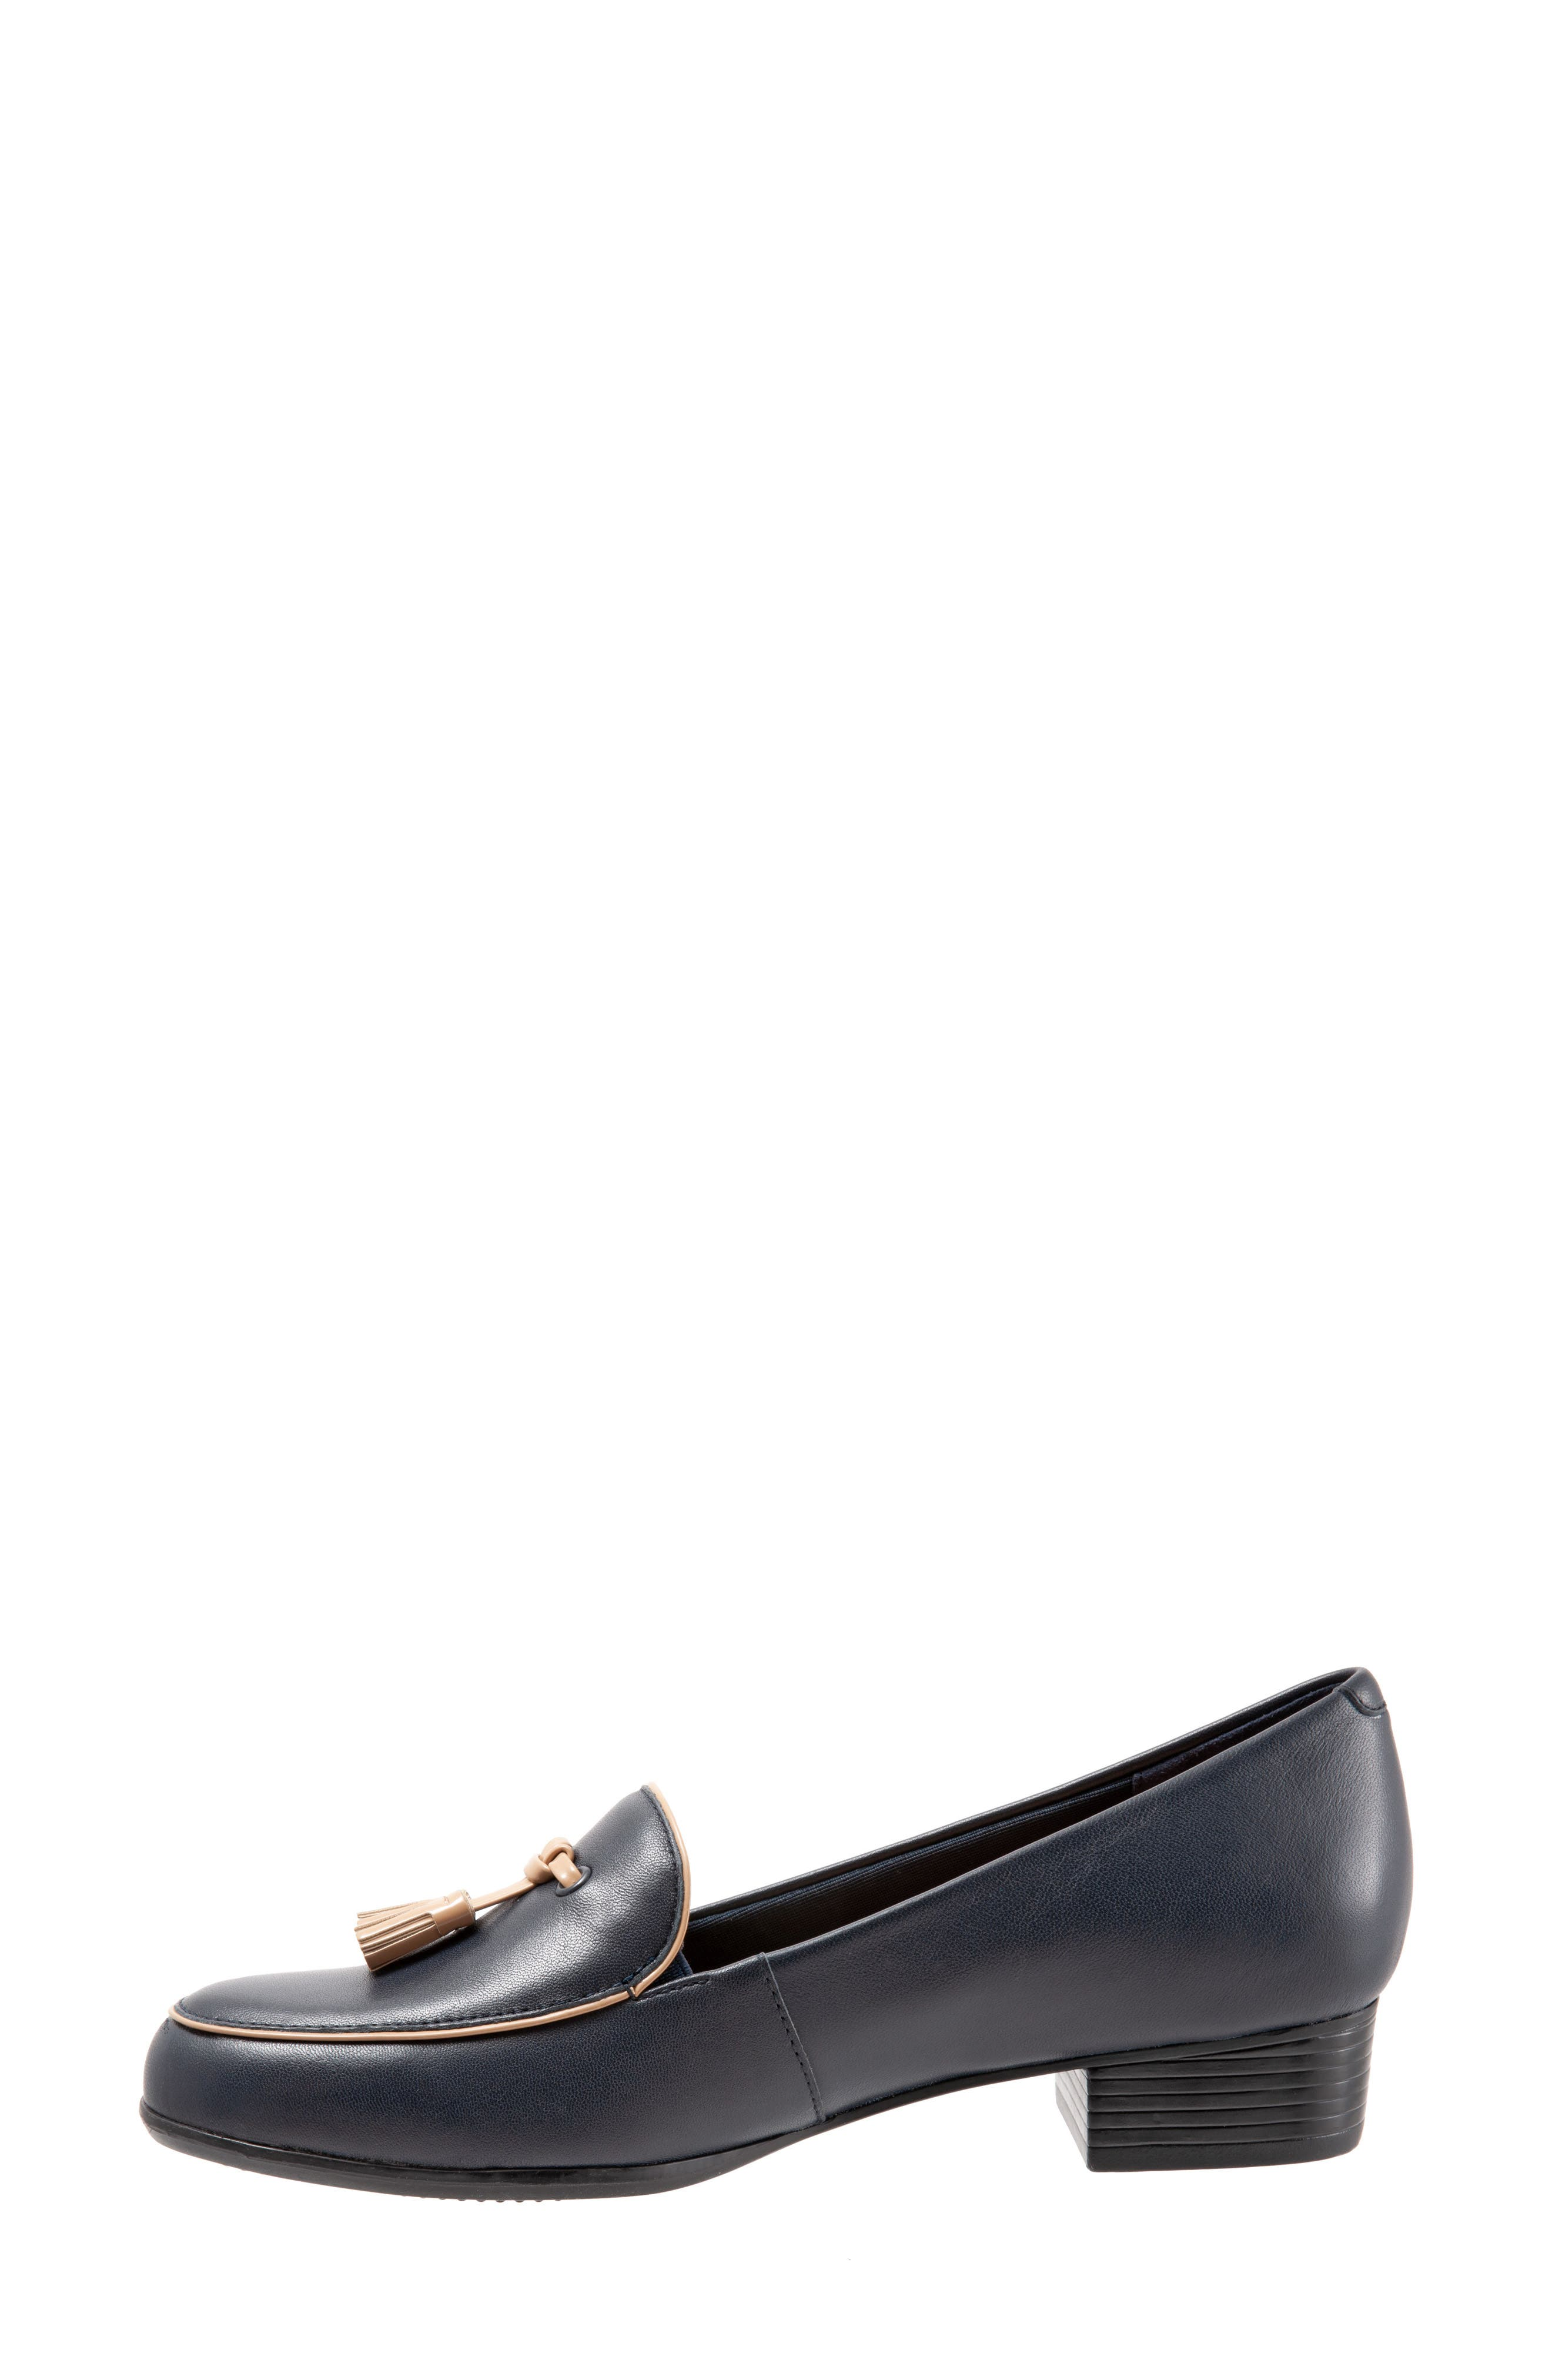 TROTTERS,                             Mary Tassel Loafer,                             Alternate thumbnail 8, color,                             NAVY LEATHER